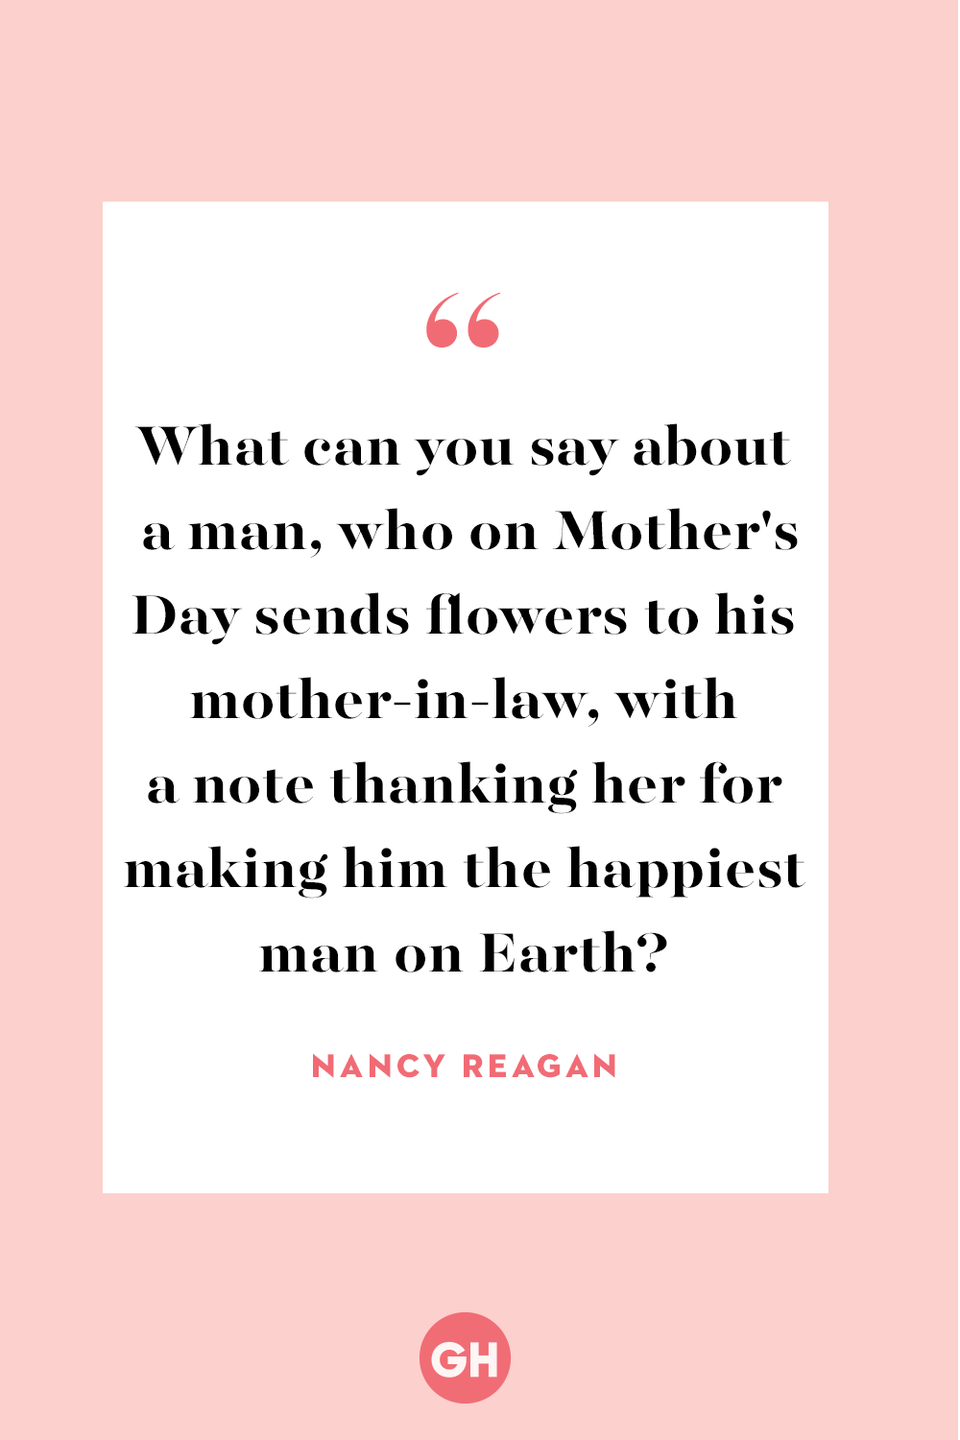 <p>What can you say about a man, who on Mother's Day sends flowers to his mother-in-law, with a note thanking her for making him the happiest man on Earth?</p>